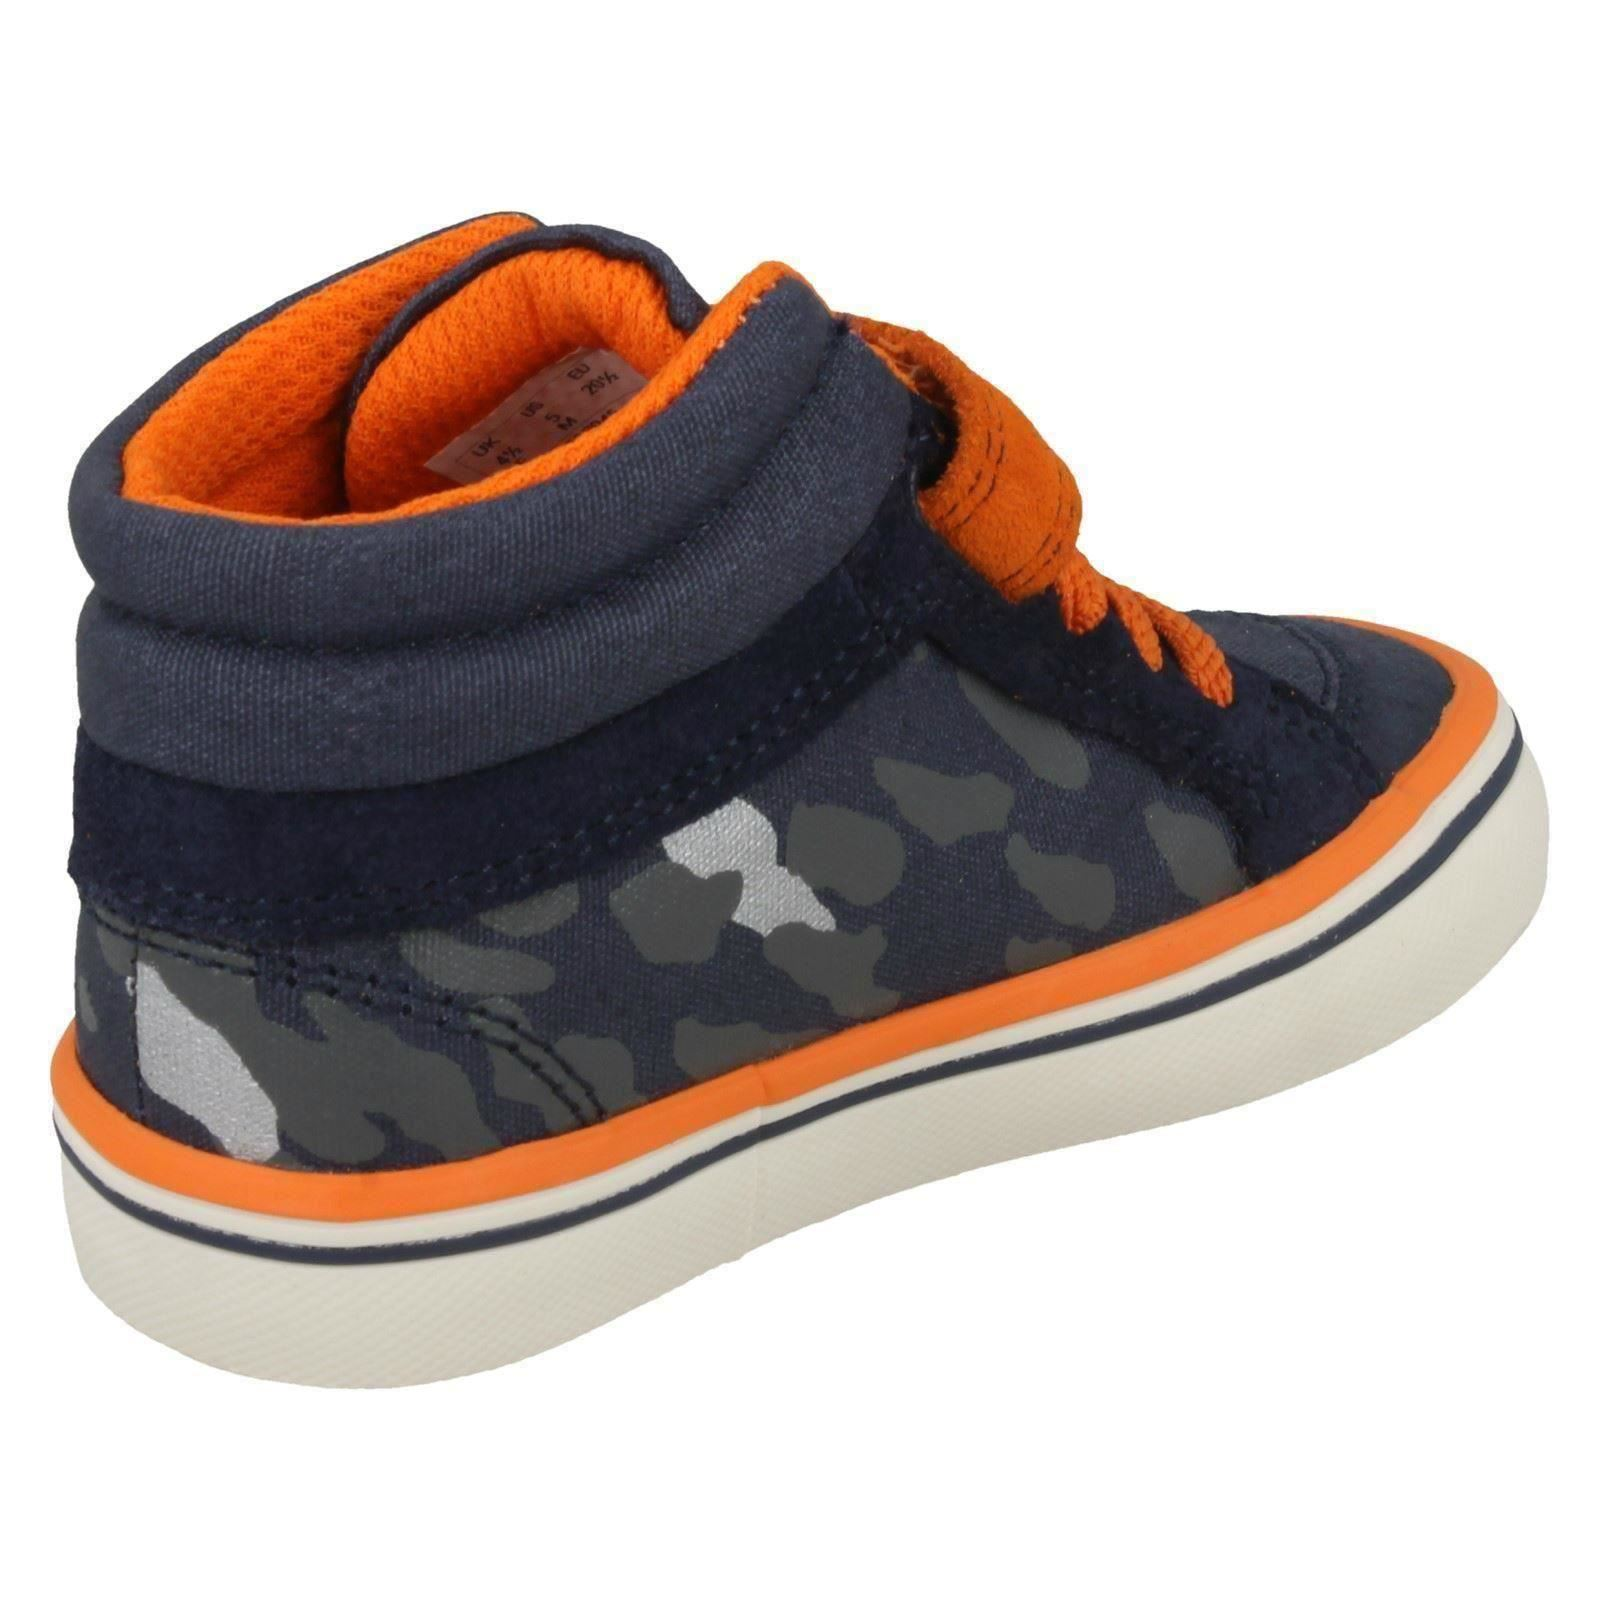 Boys First Shoes By Clarks Casual Hi-Top Trainers Juggle Sam